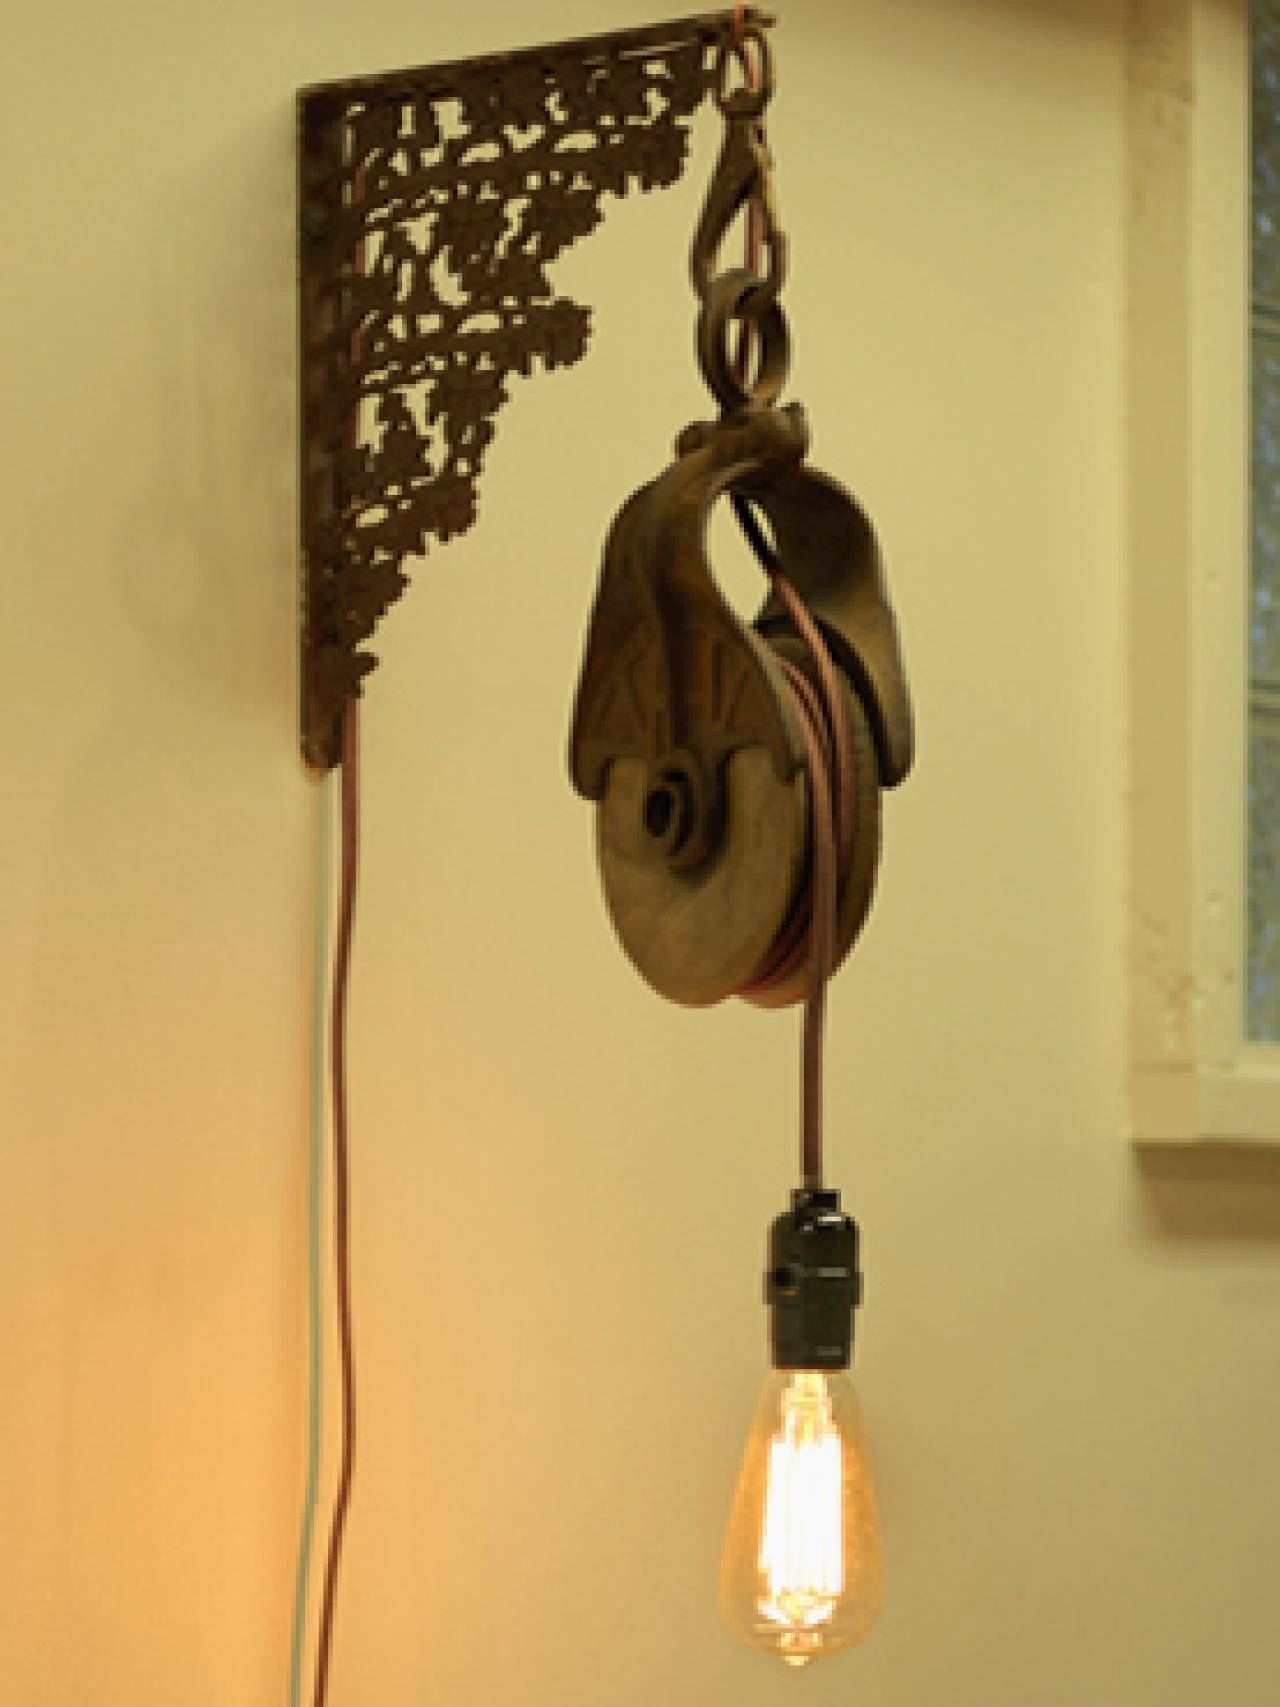 Brighten Up With These Diy Home Lighting Ideas | Hgtv's Decorating in Pulley Lights Fixtures (Image 5 of 15)